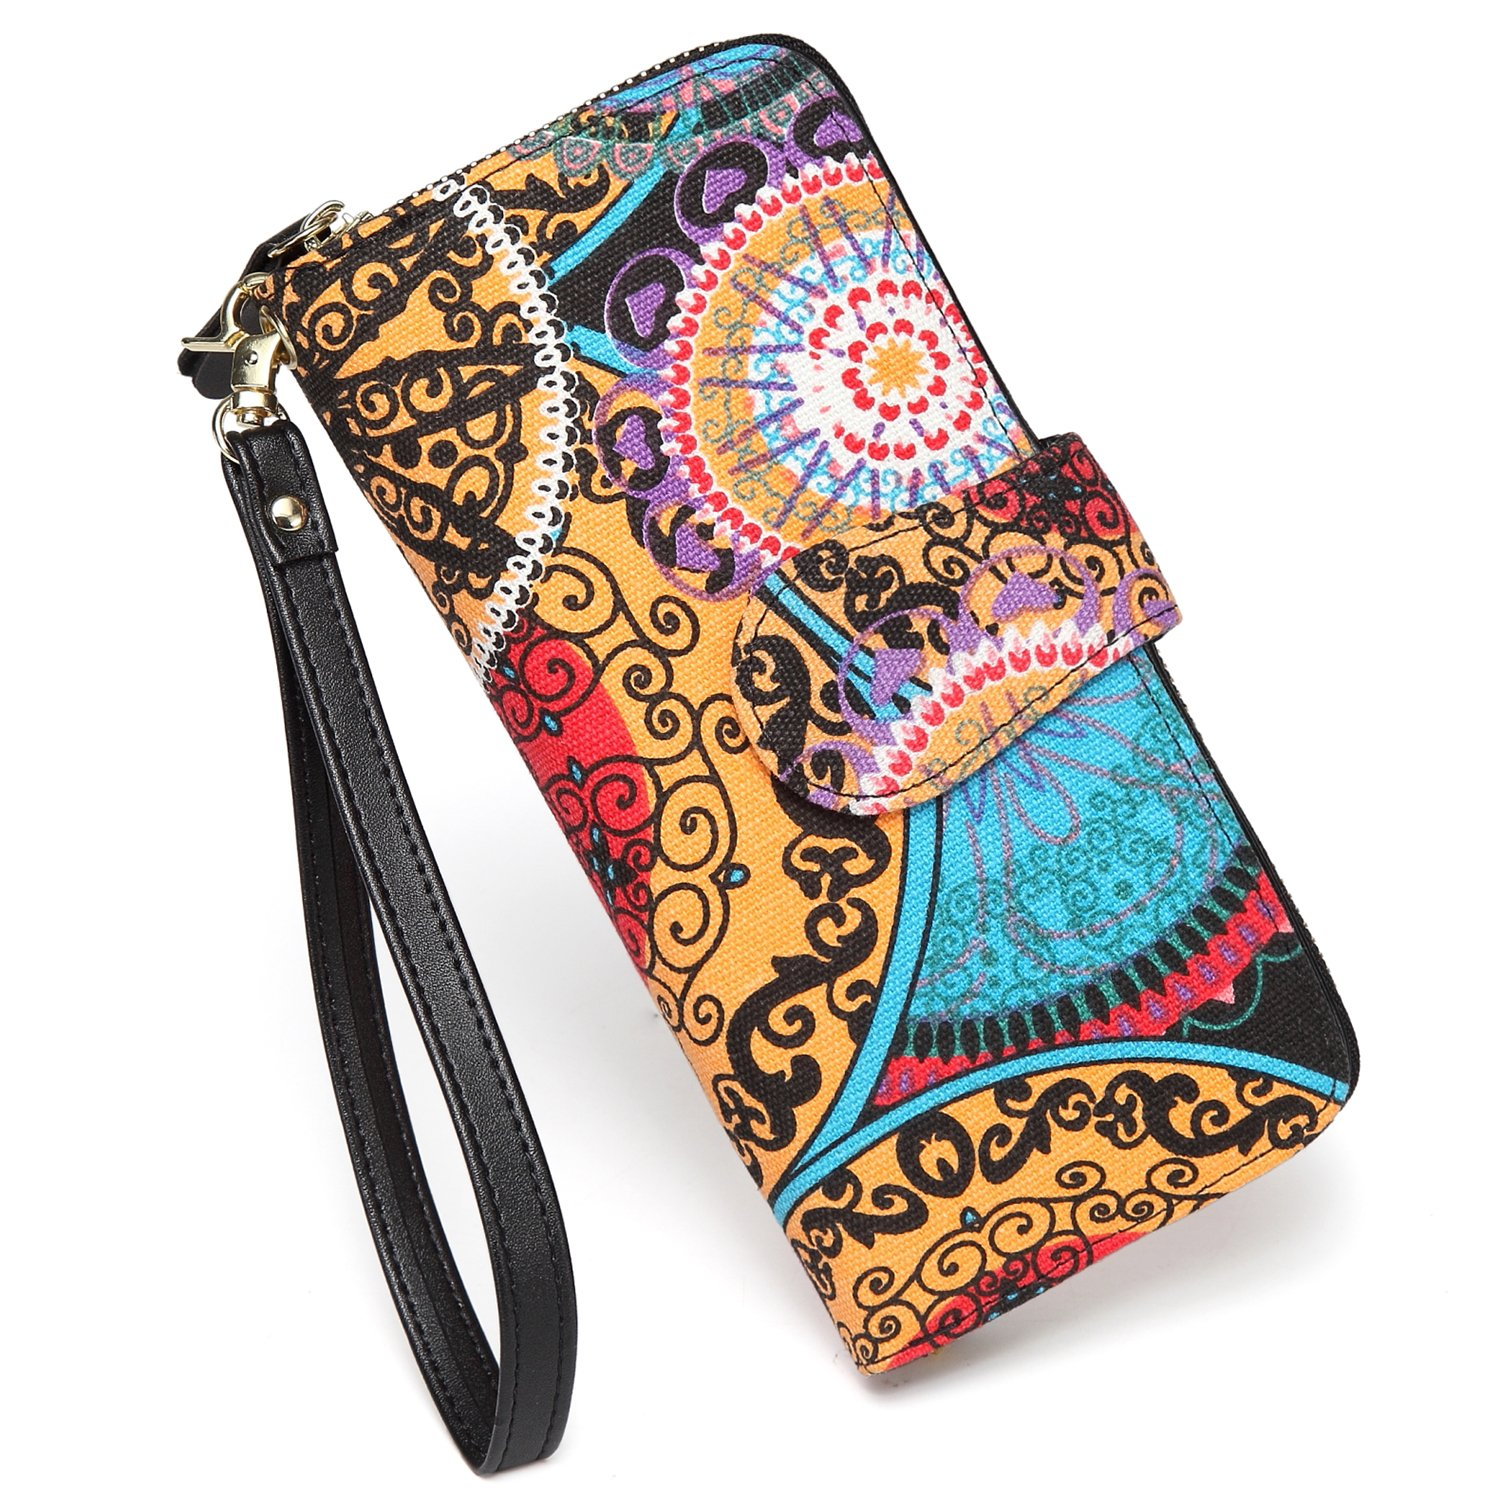 SANSARYA Boho Wristlet Zipper Women Wallets Bifold Snap Ladies Canvas Clutch Wallet with Strap,Large Capacity